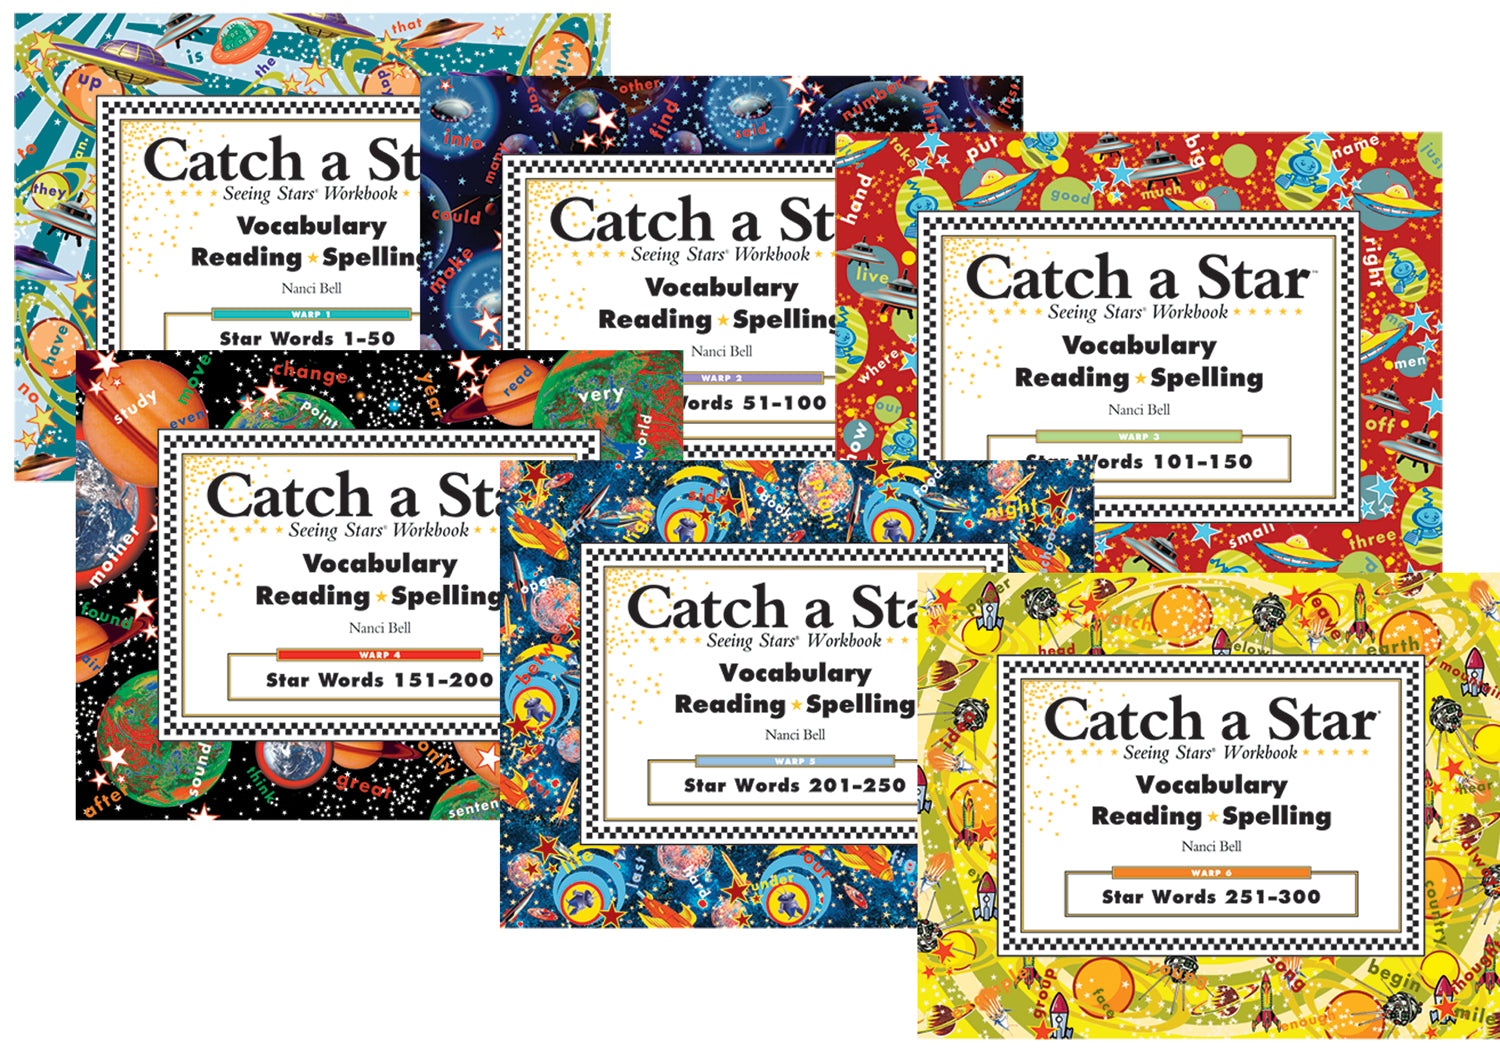 Catch a Star® Workbooks